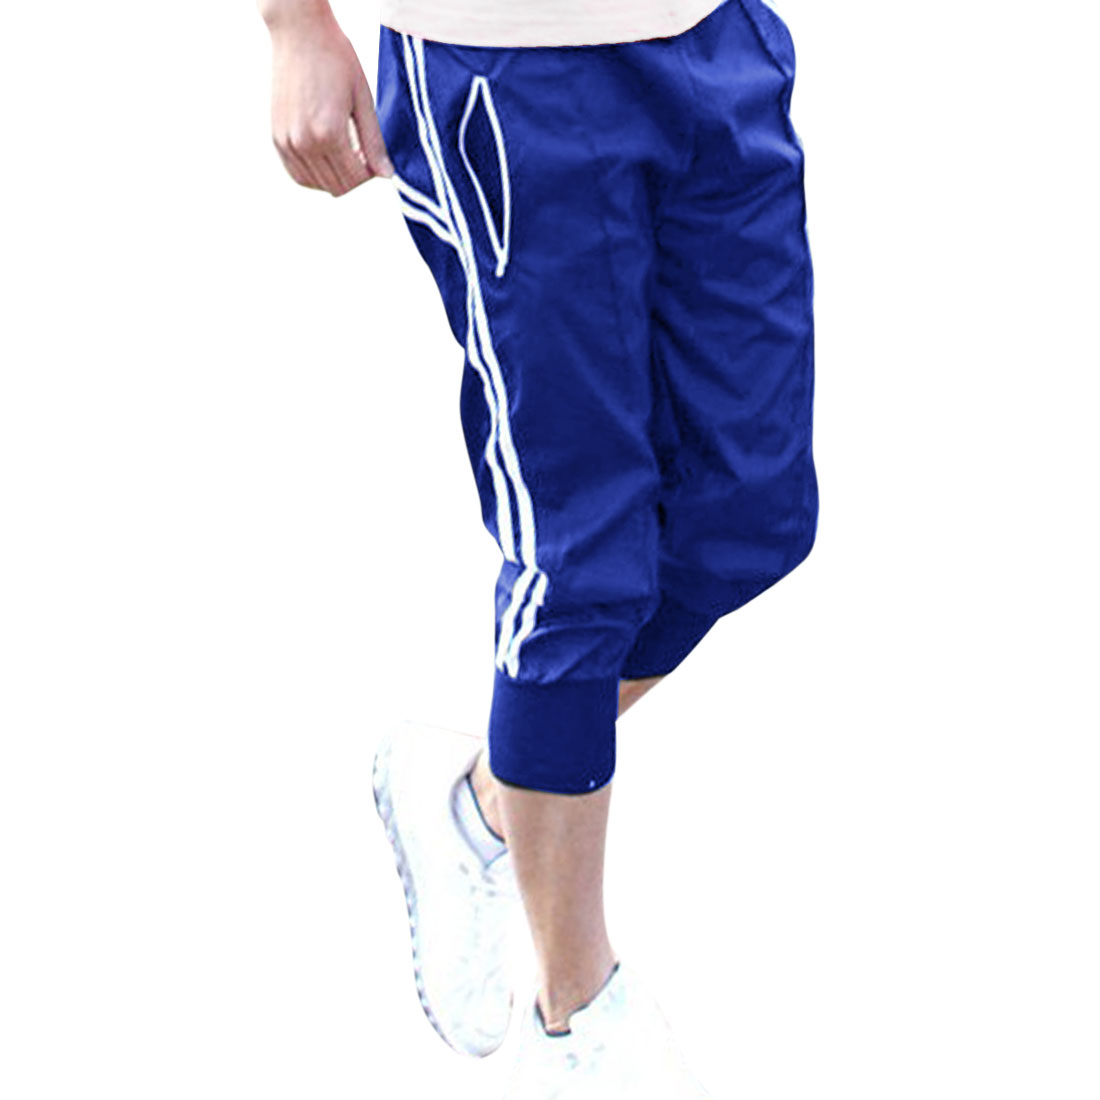 Men Blue Self Tie Drawstring Waist Slant Pocket Shorts W29